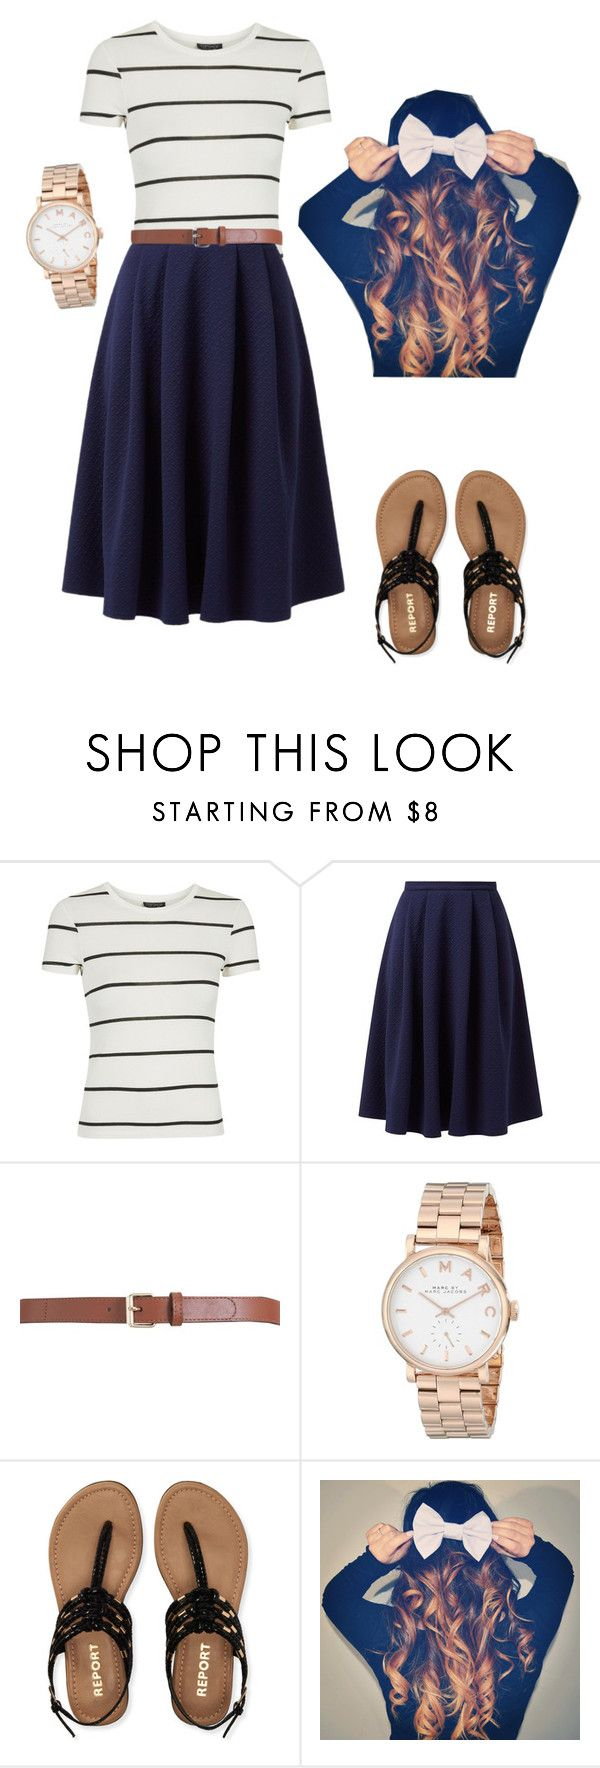 """Casual outfit"" by pentecostalgirll ❤ liked on Polyvore featuring Topshop, Maison Boinet, Marc by Marc Jacobs and Aéropostale"